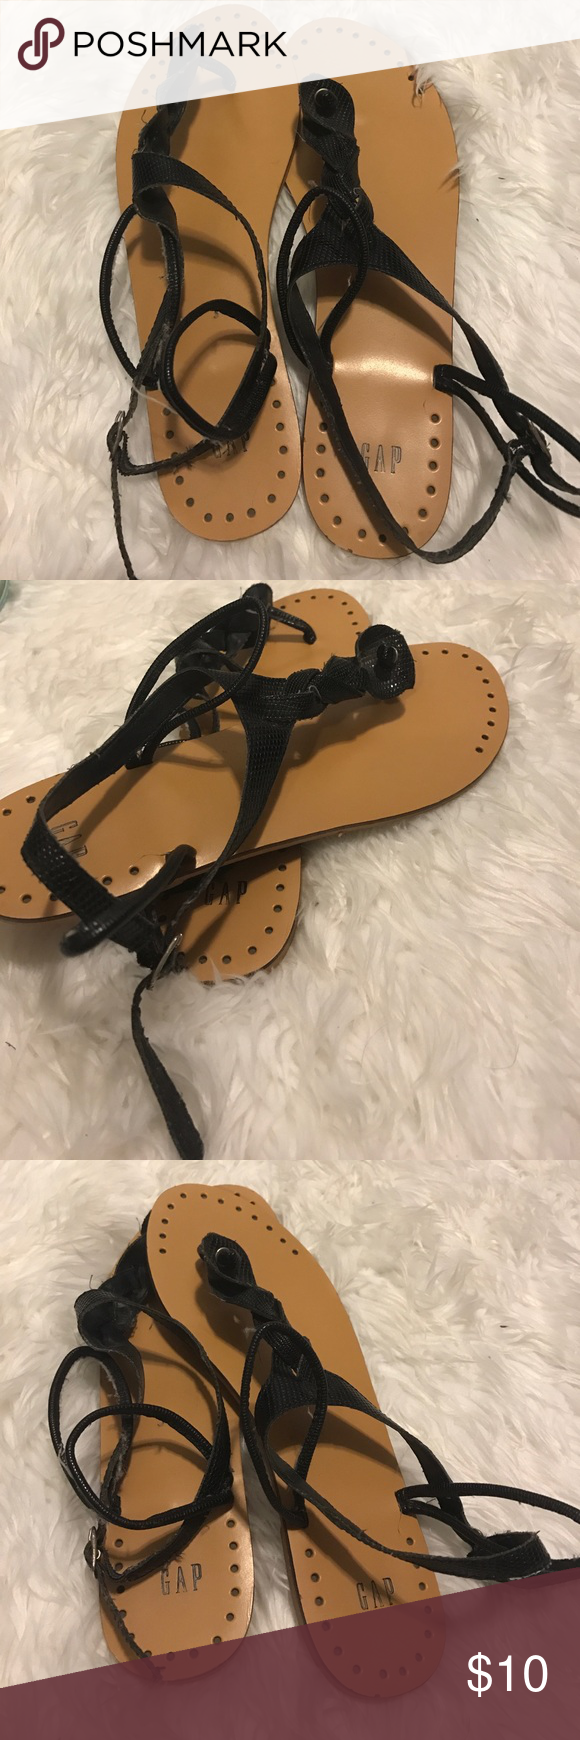 Black sandals gap - Shop Women S Gap Black Tan Size 9 Sandals At A Discounted Price At Poshmark Description Barely Worn Braided Top Strap Sold By Tabbi_ann